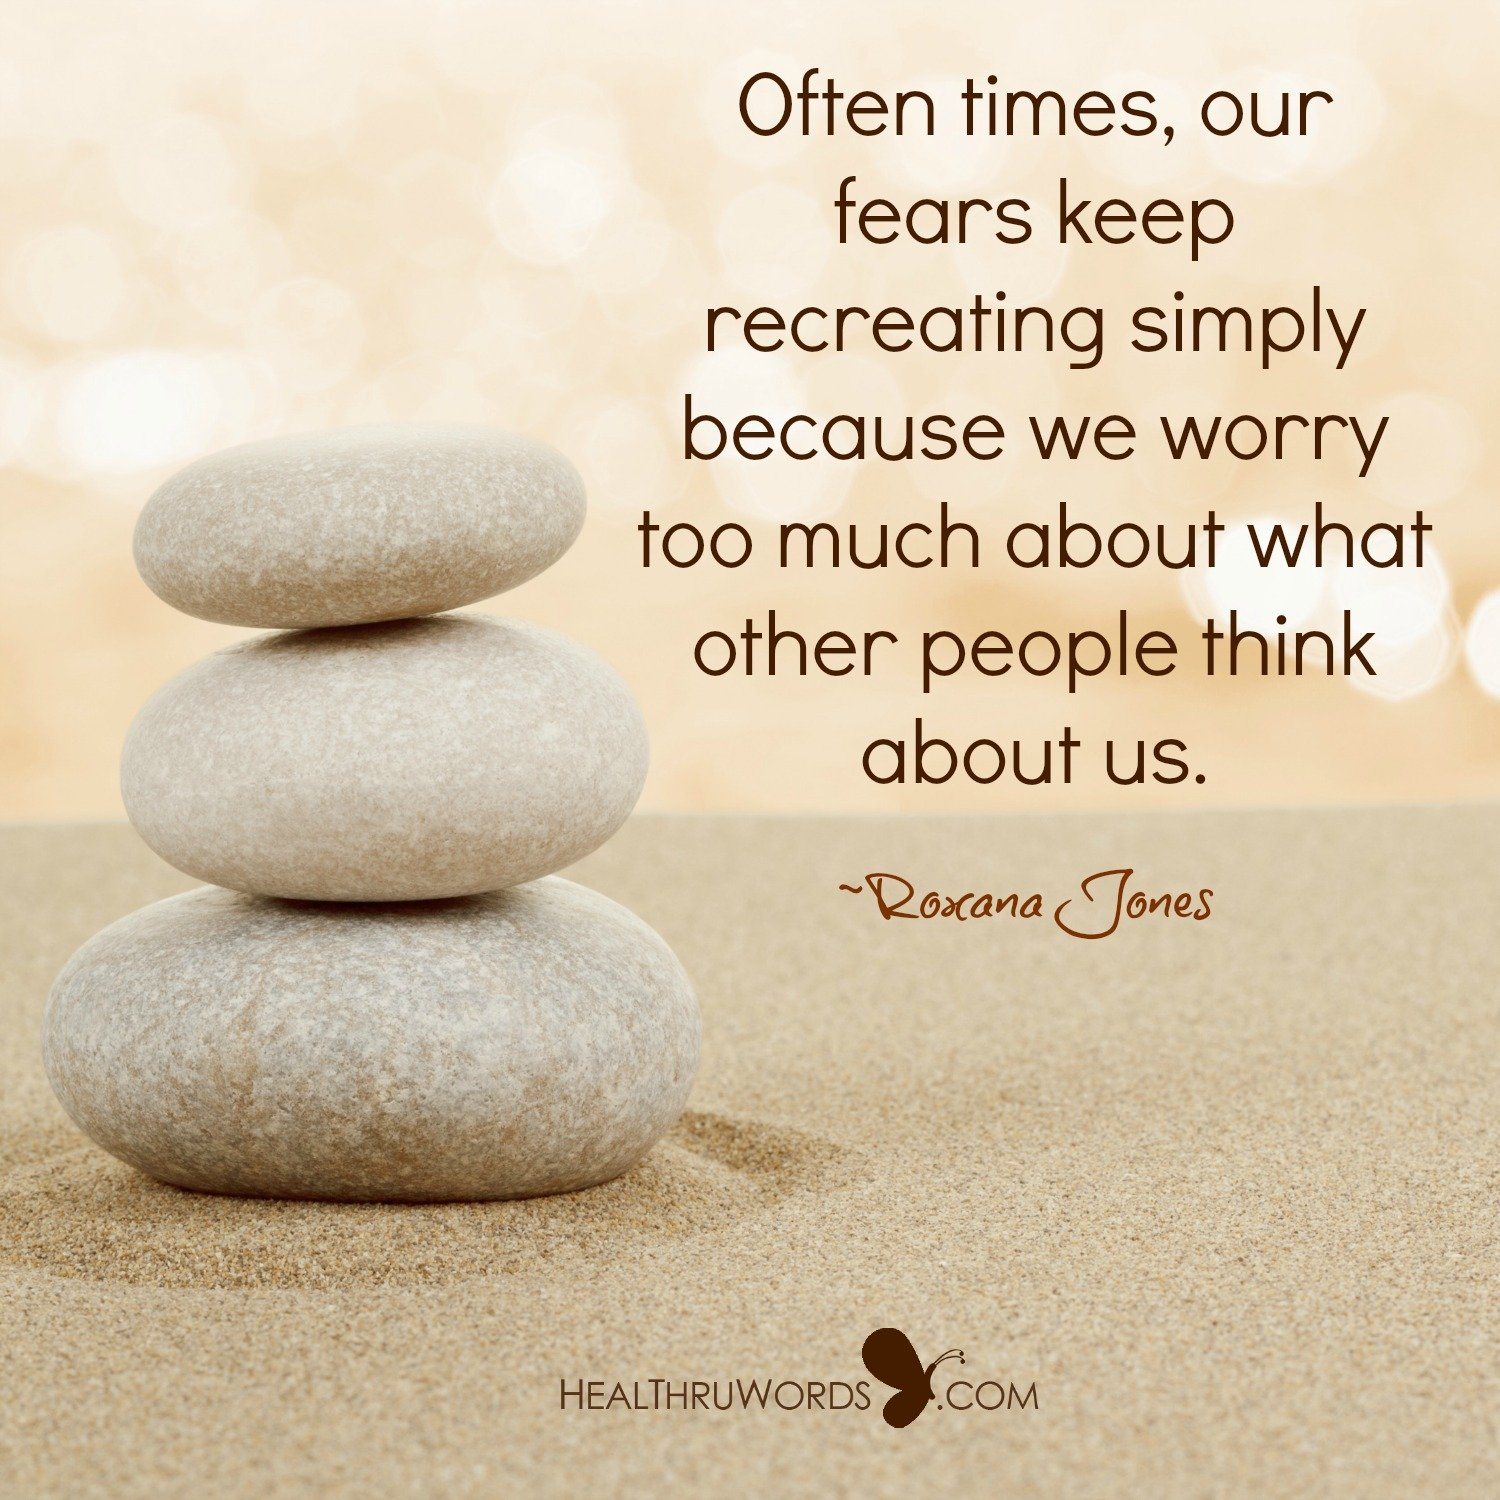 Inspirational Image: Thinking About Others